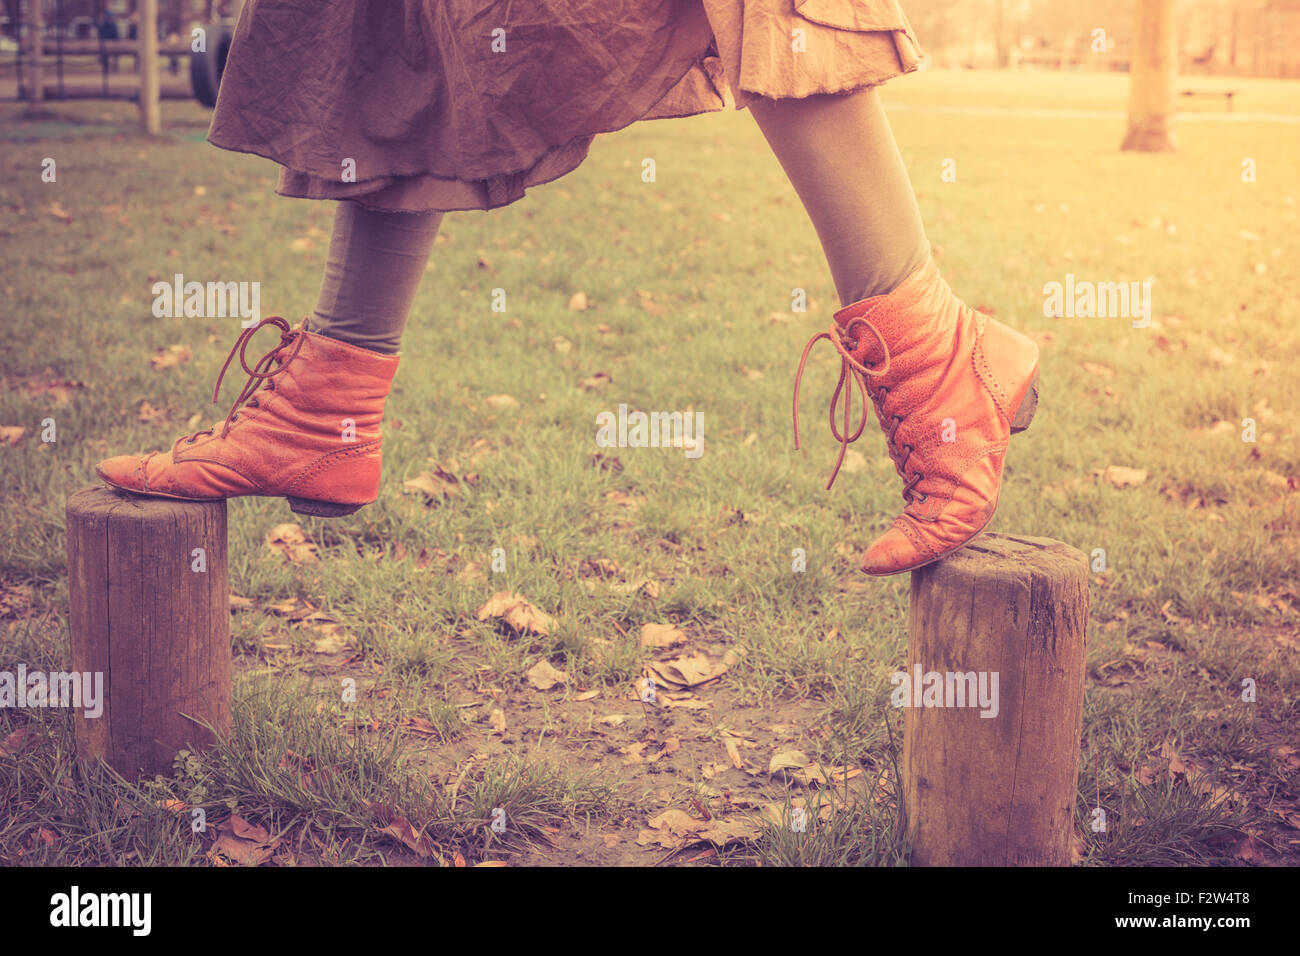 A woman is playfully walking on some small wooden posts in the park - Stock Image